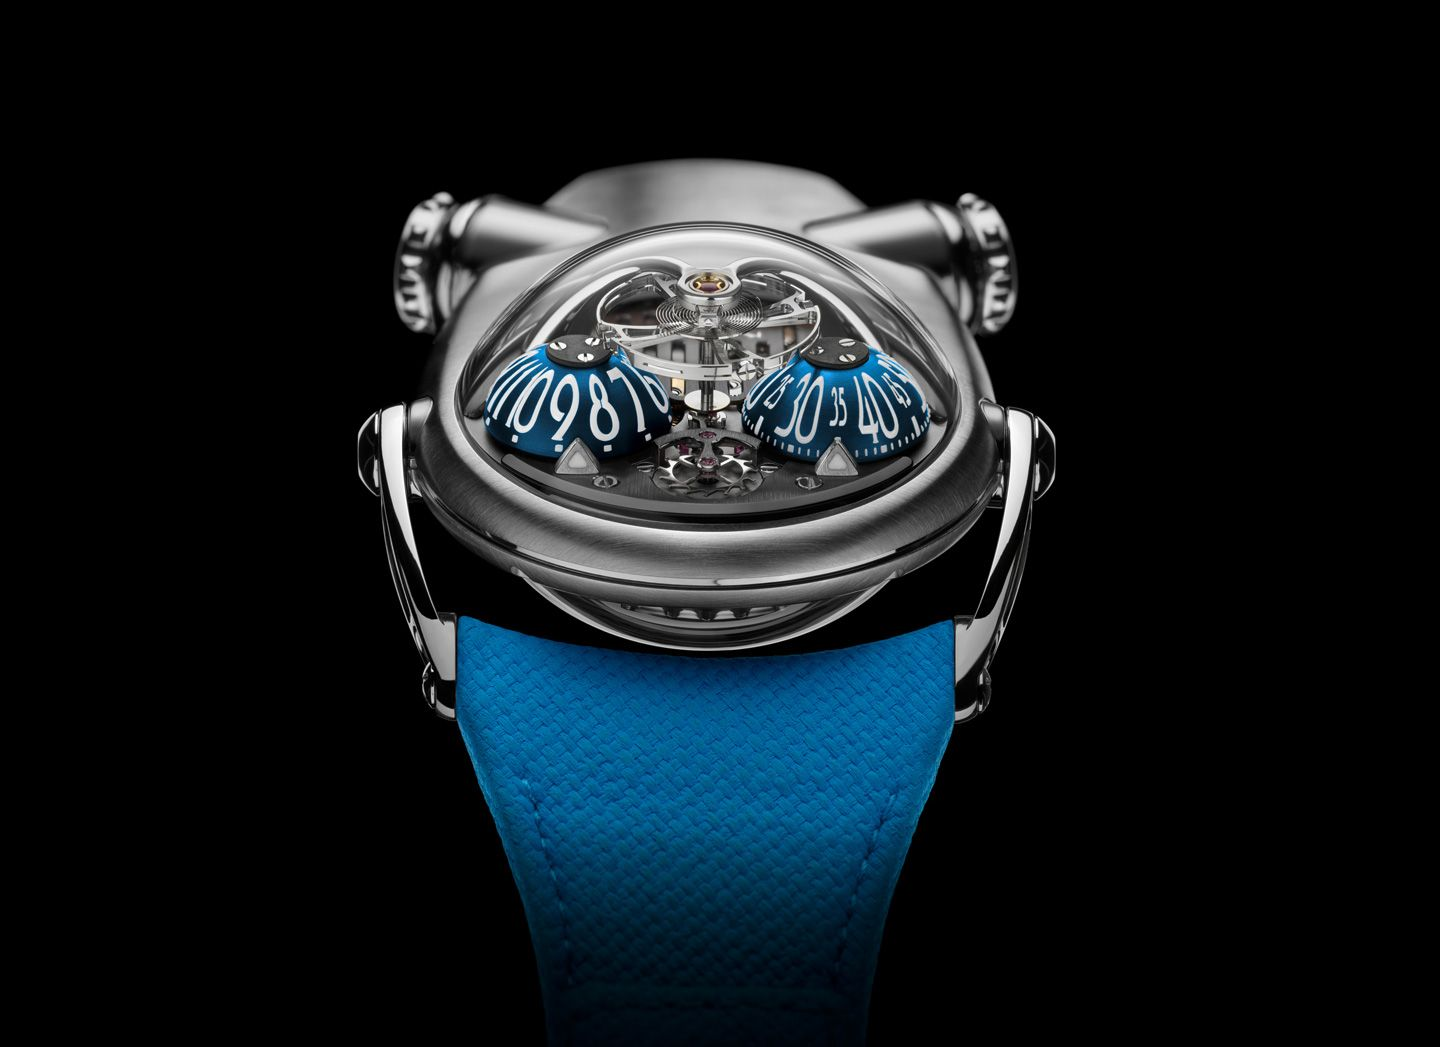 5 Things To Know About MB&F's Newest Timepiece, The Horological Machine N°10